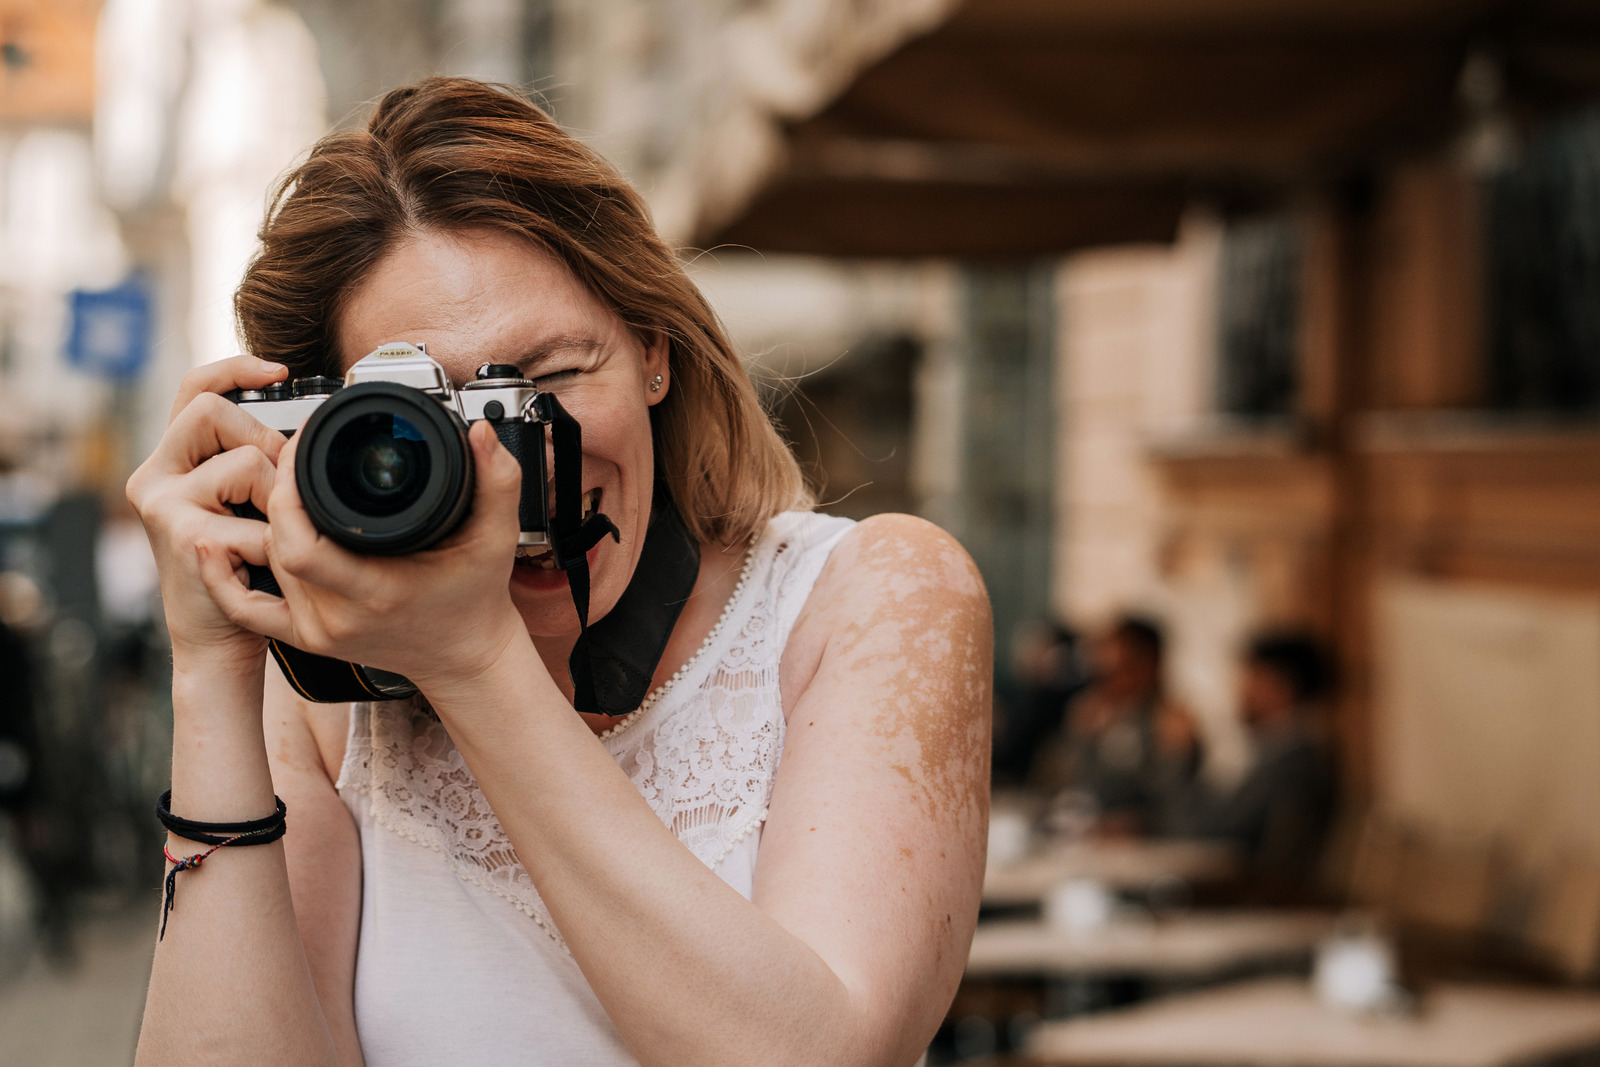 Learning to select a filter: what you should pay attention to